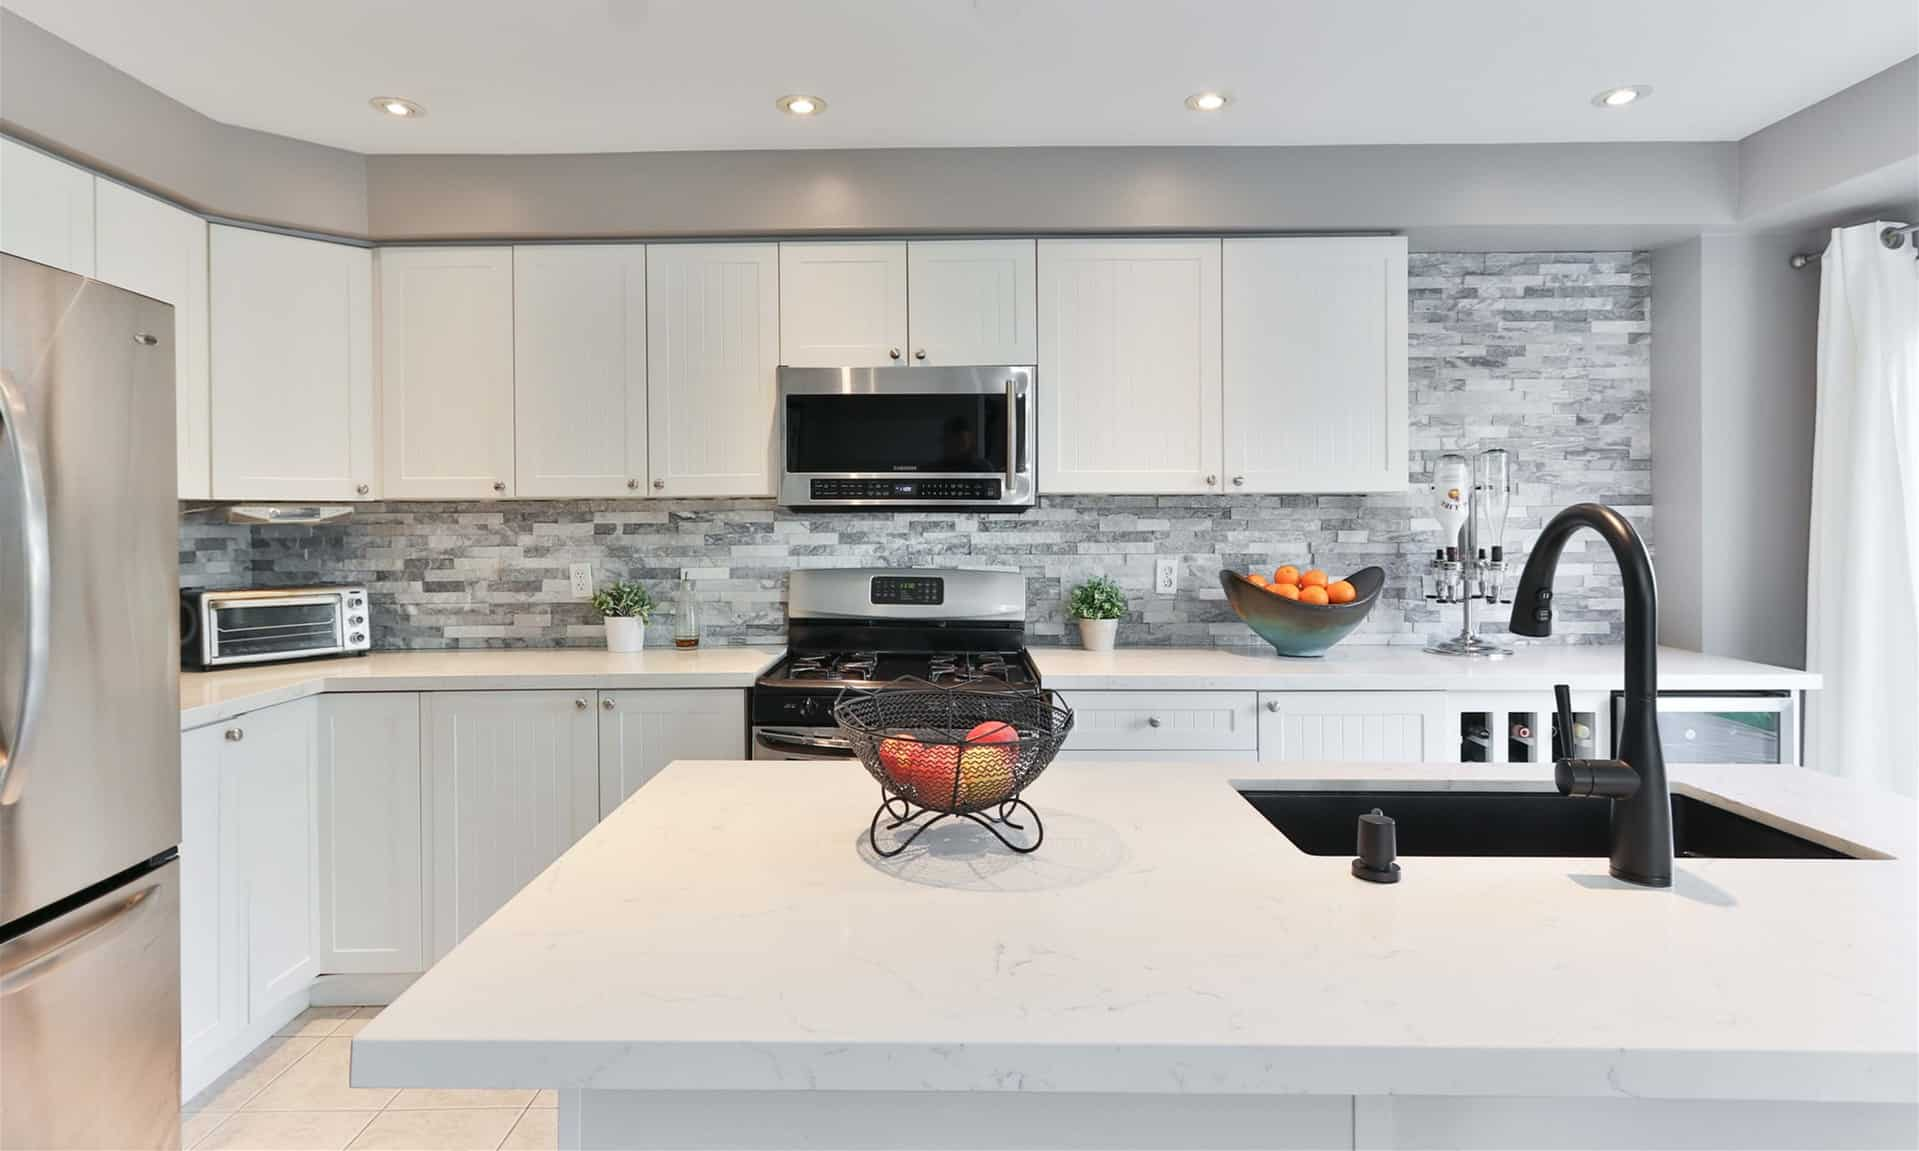 27 Stylish Kitchen Counter Ideas Designs Pictures